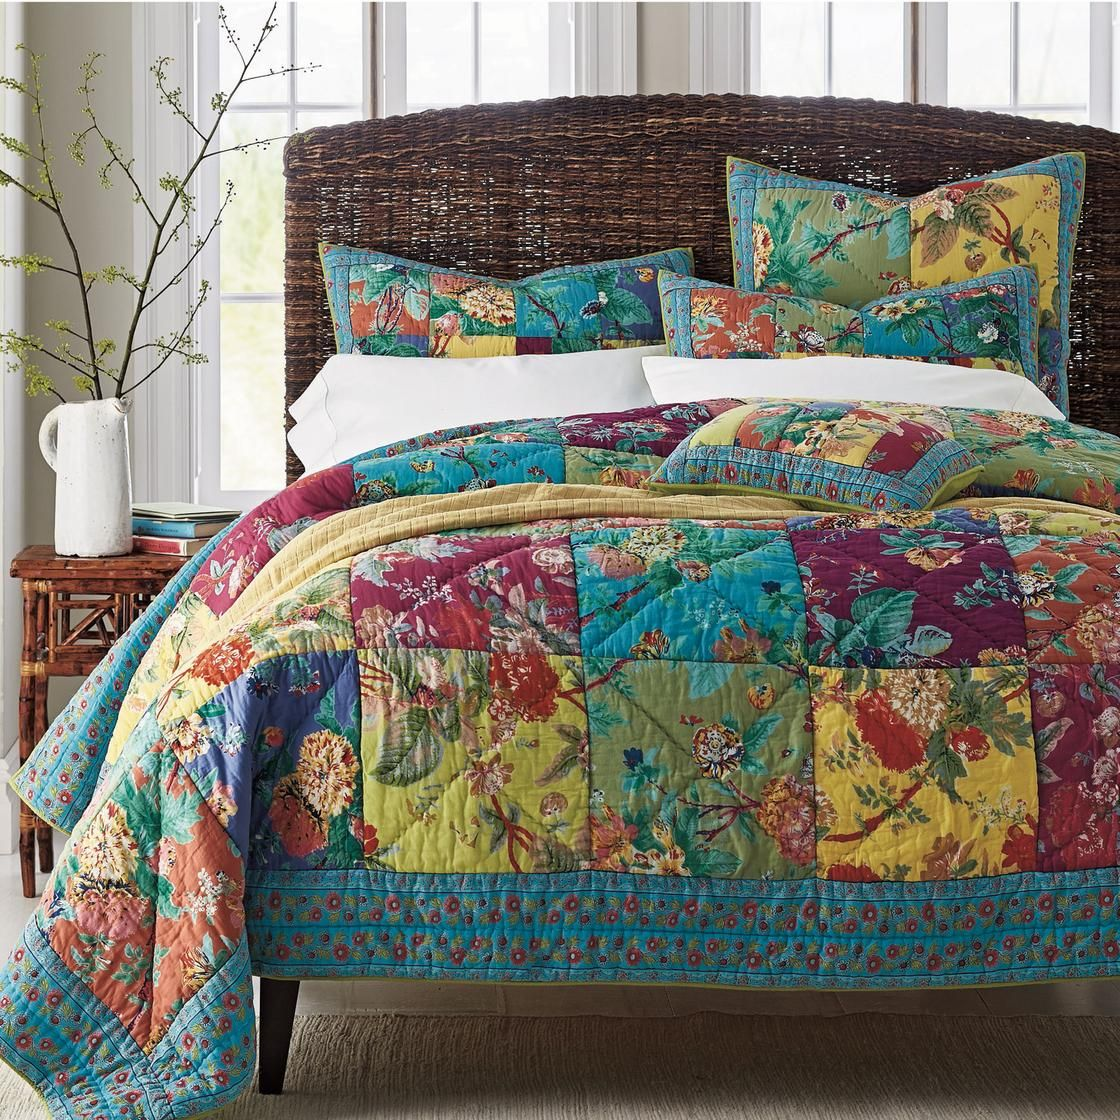 Patchwork bed sheets patterns - Chelsea Quilt Sham A Celebration Of Color And Pattern Our Chelsea Patchwork Quilt